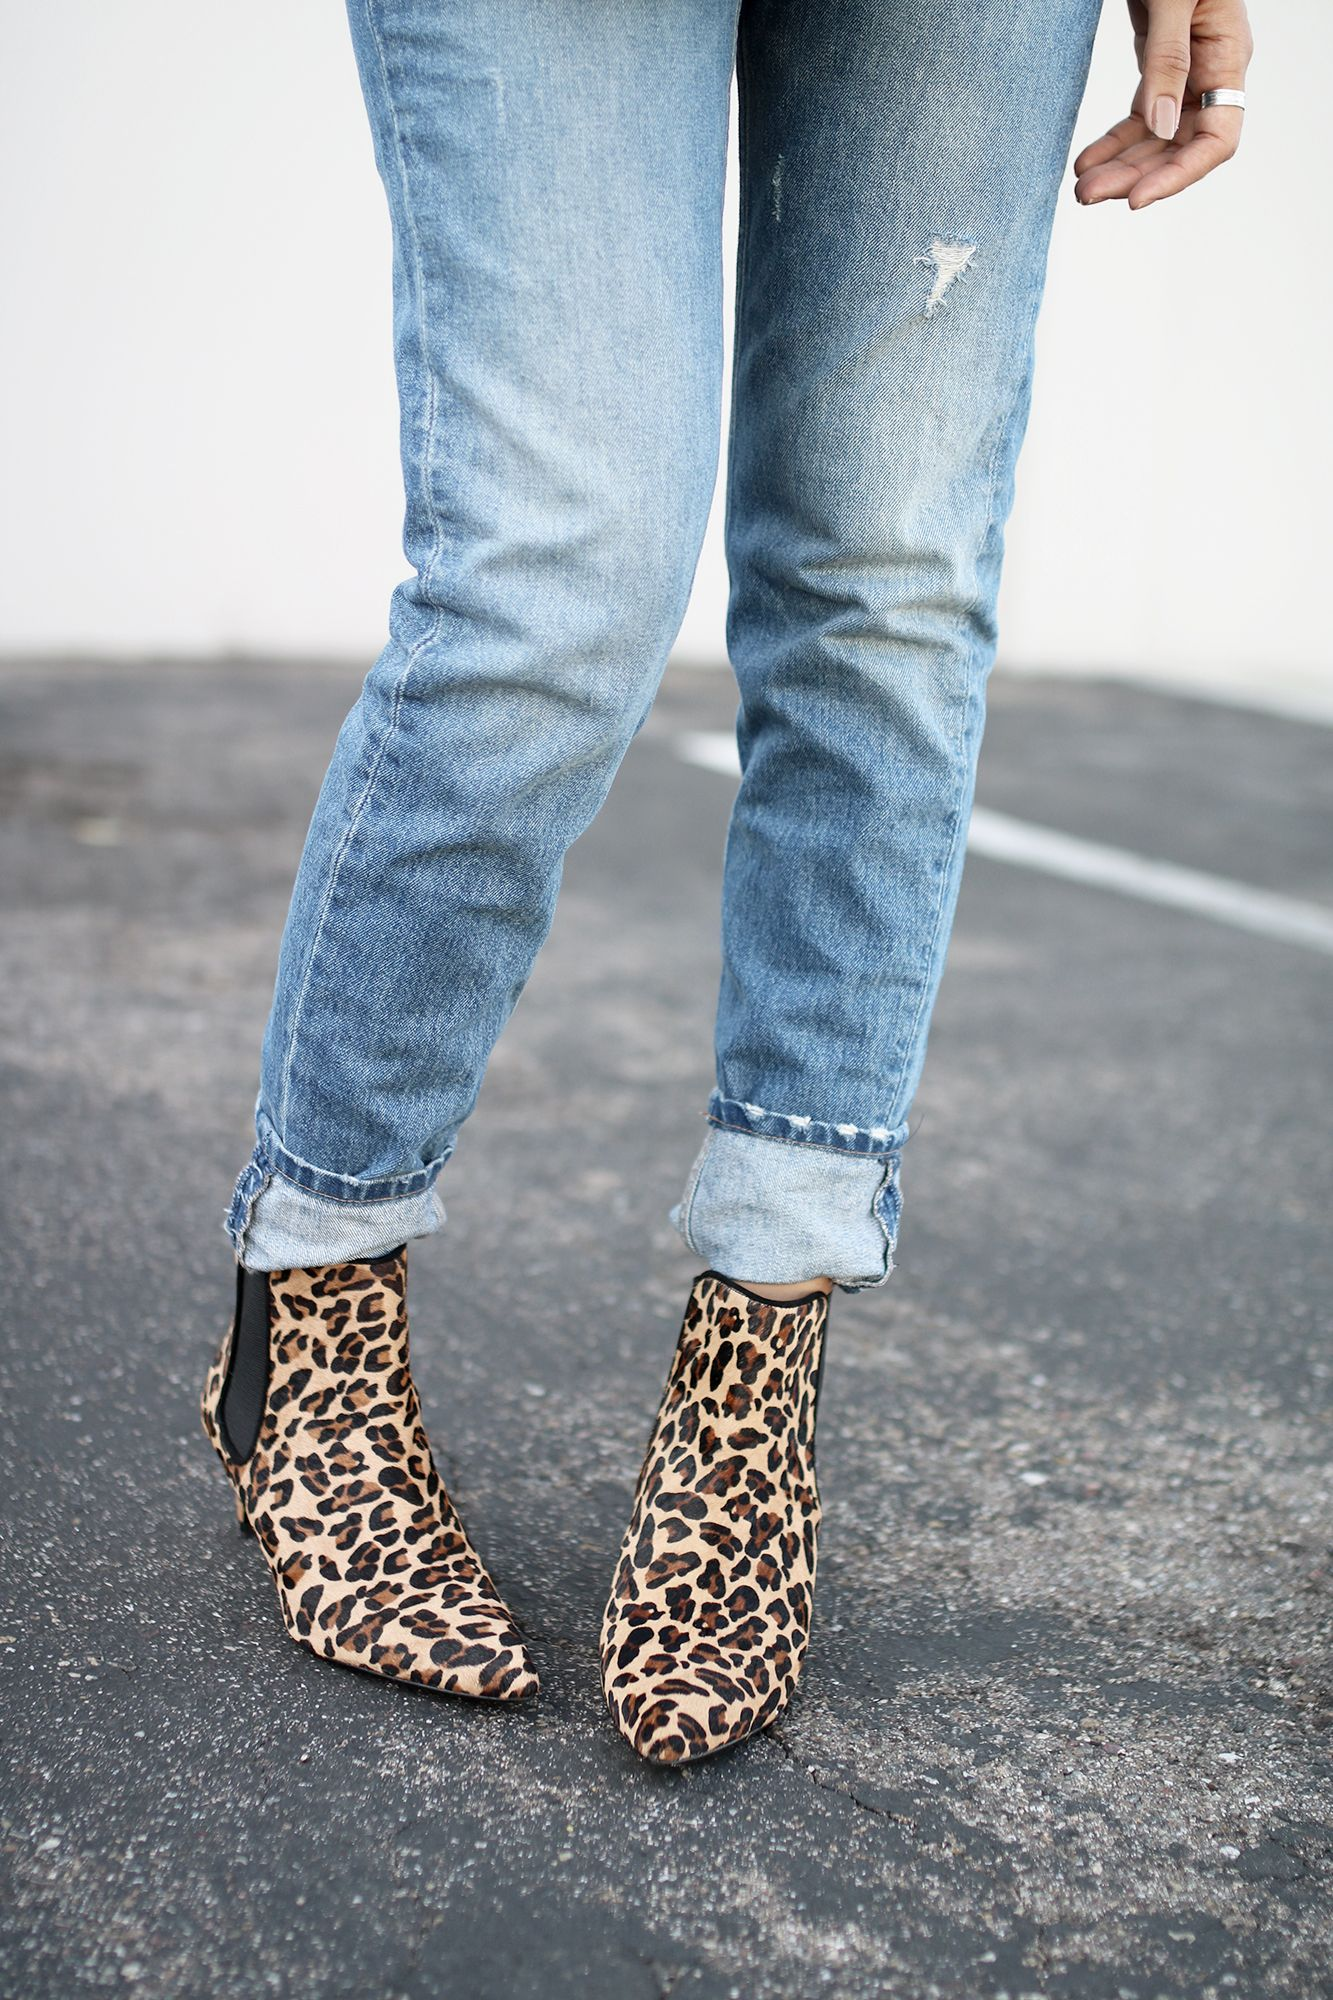 503089fa0b9 Zara leopard print boots and faded jeans. | Anahis in 2019 | Leopard ...